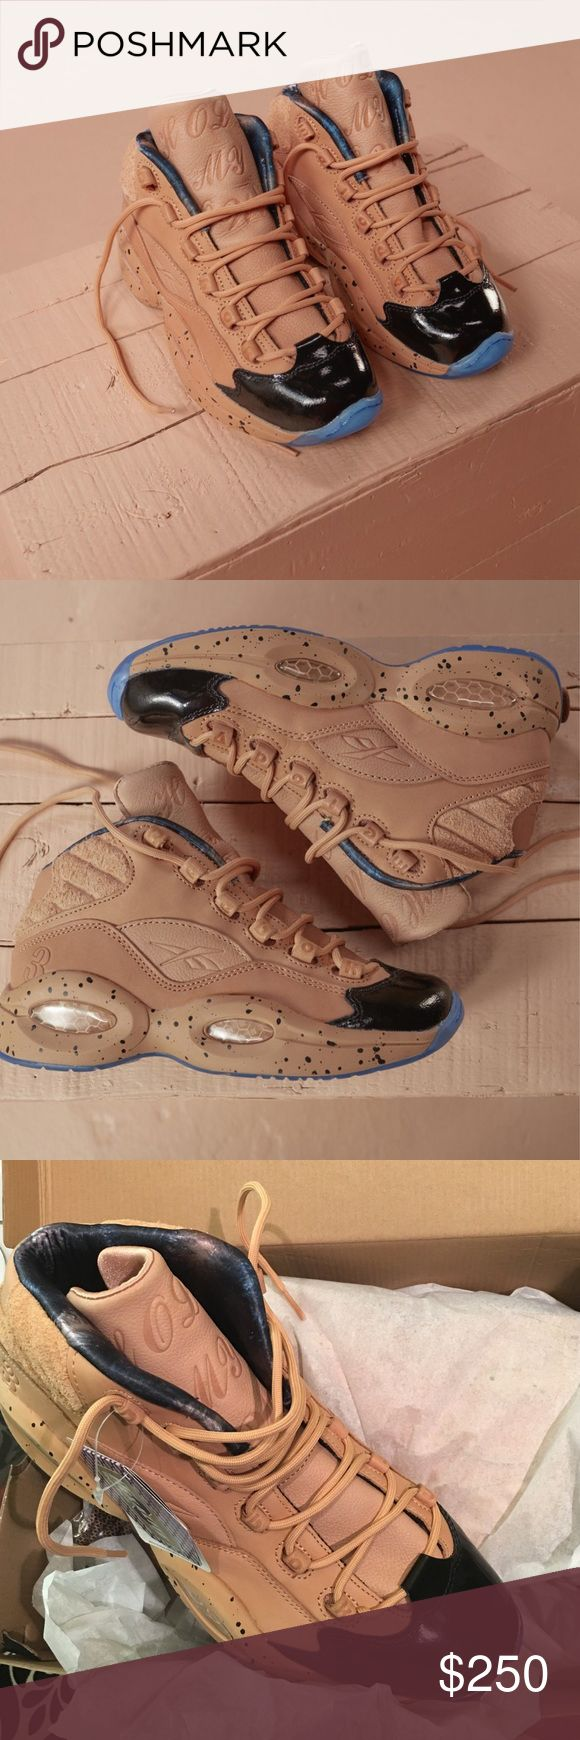 "ME X AI 20th Anniversary Reebok Sneakers Melody Ehsani in collaboration w/ Reebok Classics & Allen Iverson. Made w/ natural vegetable tanned leather in 3 different textures/black patent toe bed. Classic Hexalite Midsole cushioning. Comes w/ 2 different color laces: tonal color & black/tan hiking laces. Every pair comes w/ 3 sets of velcro patches that attach to the back panel on the exterior of the shoe. Each patch features a different one of AI's tattoos. Tongue has AI's ""Hold My Own""…"